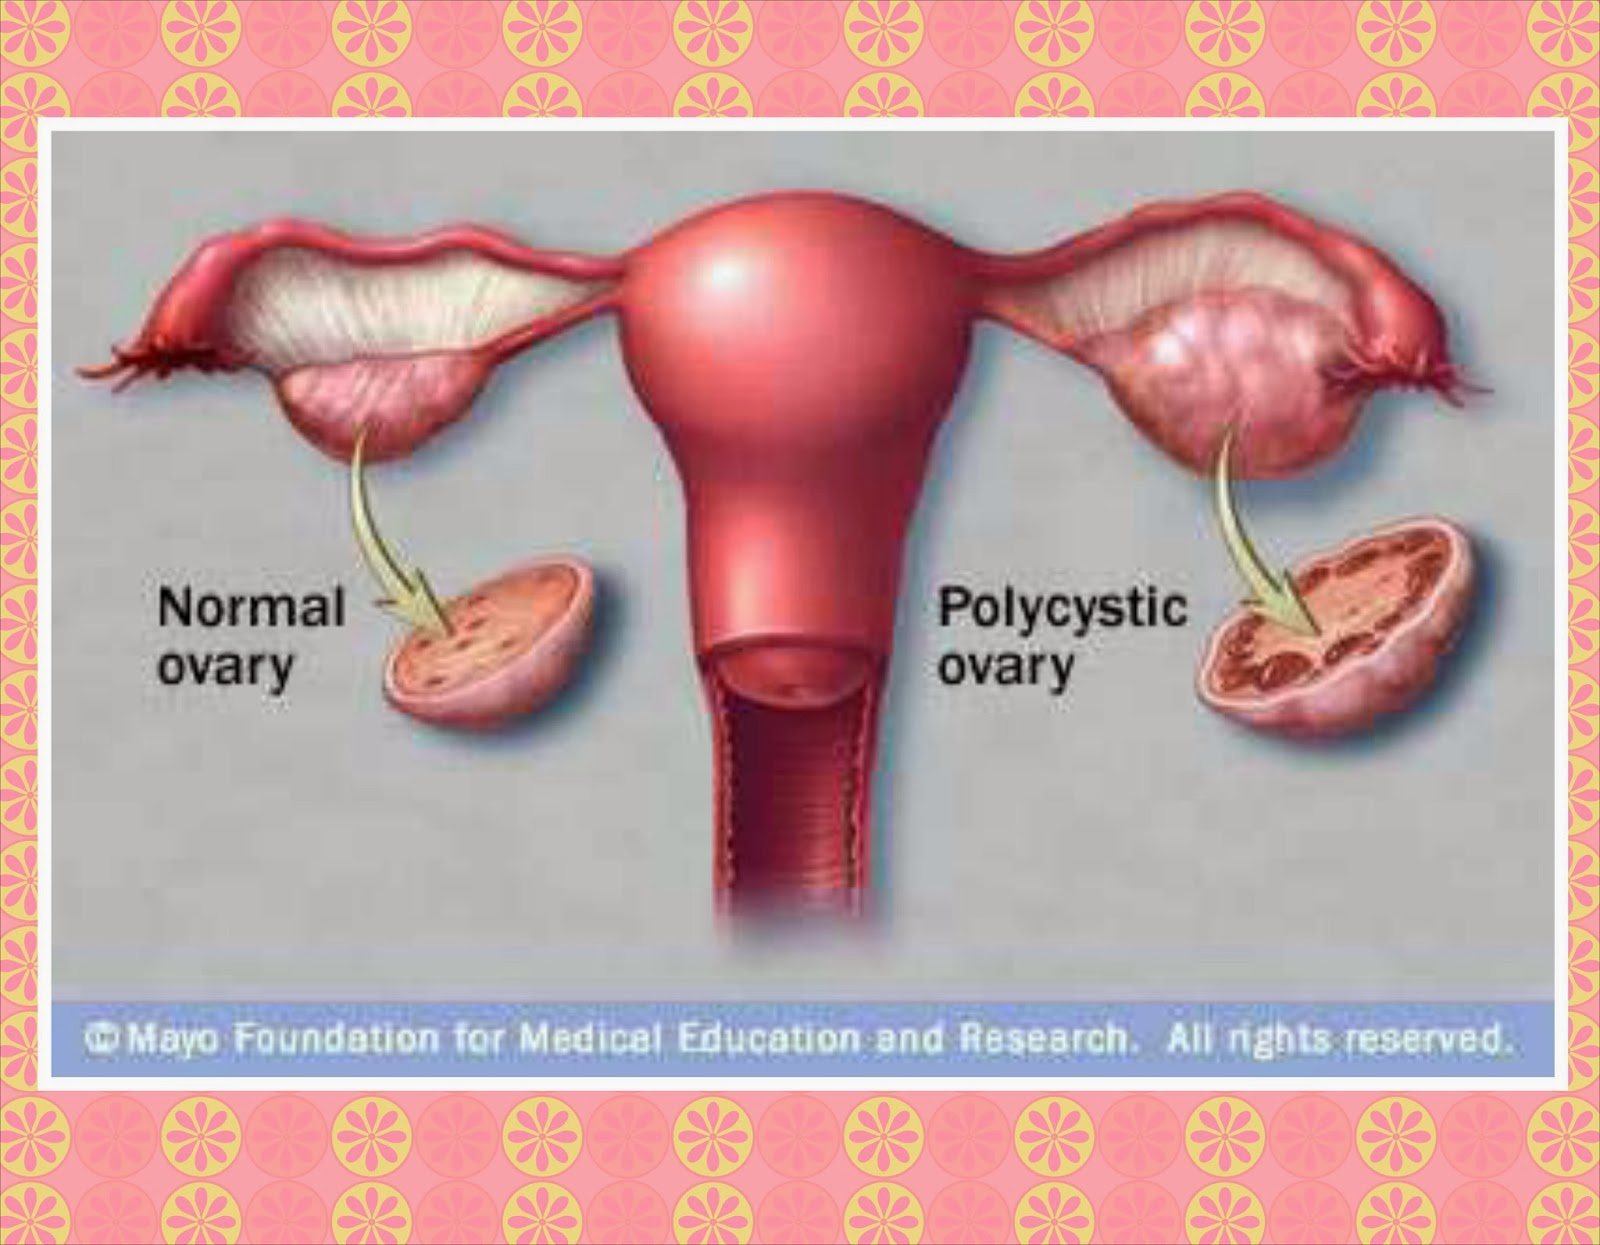 Metformin for Polycystic Ovarian Syndrome